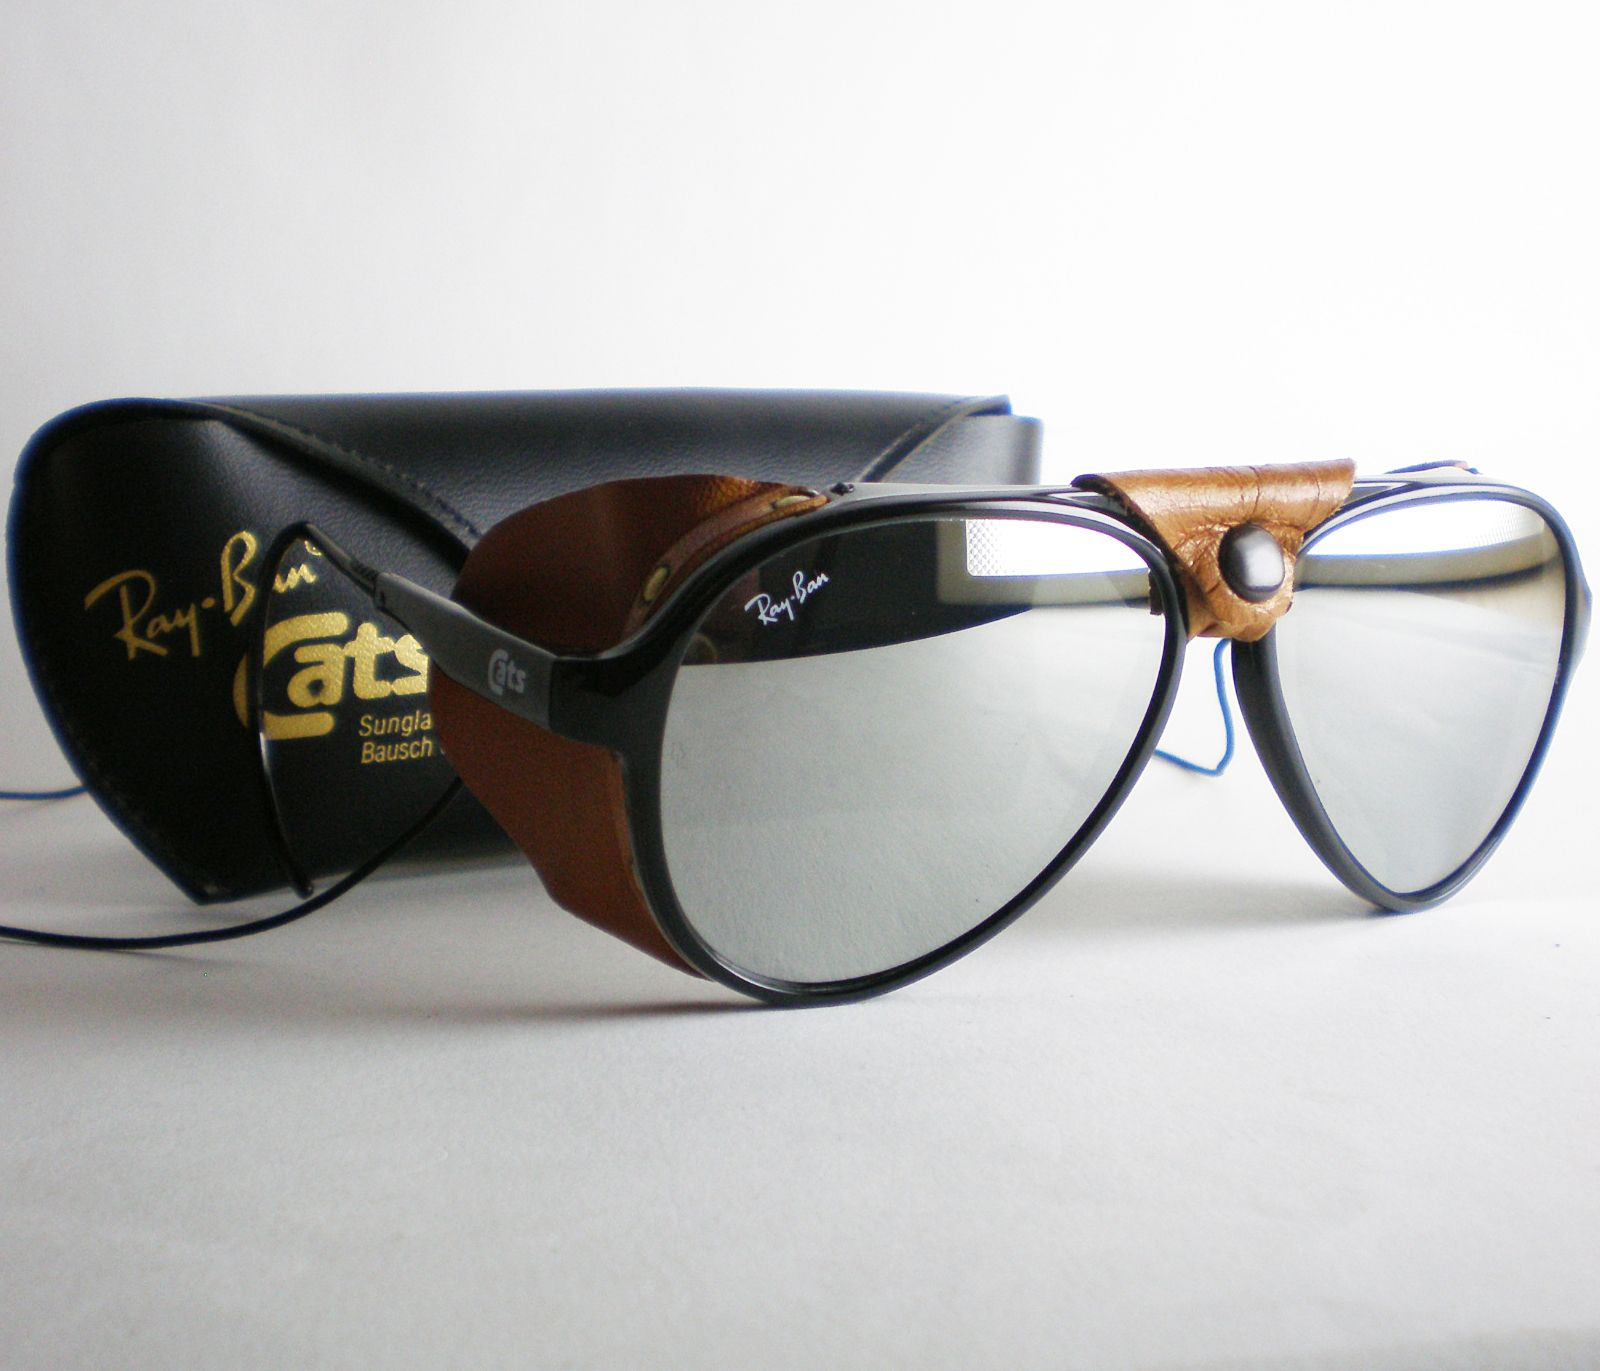 10c2421afd0 Vintage Ray Ban CATS 8000 MIRRORED Sunglasses aviator side shield leathers  black